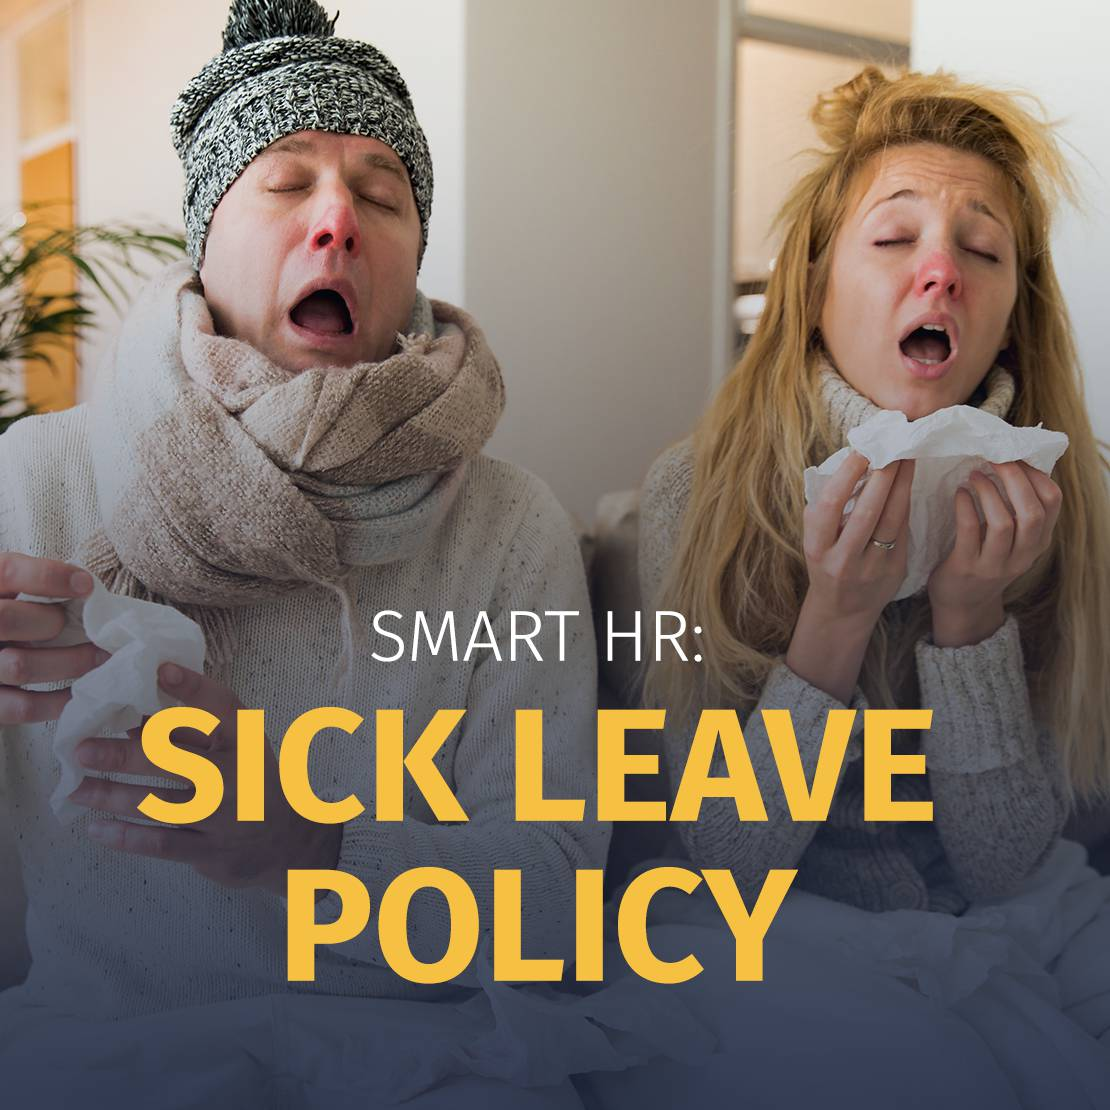 Smart HR: Sick Leave Policy